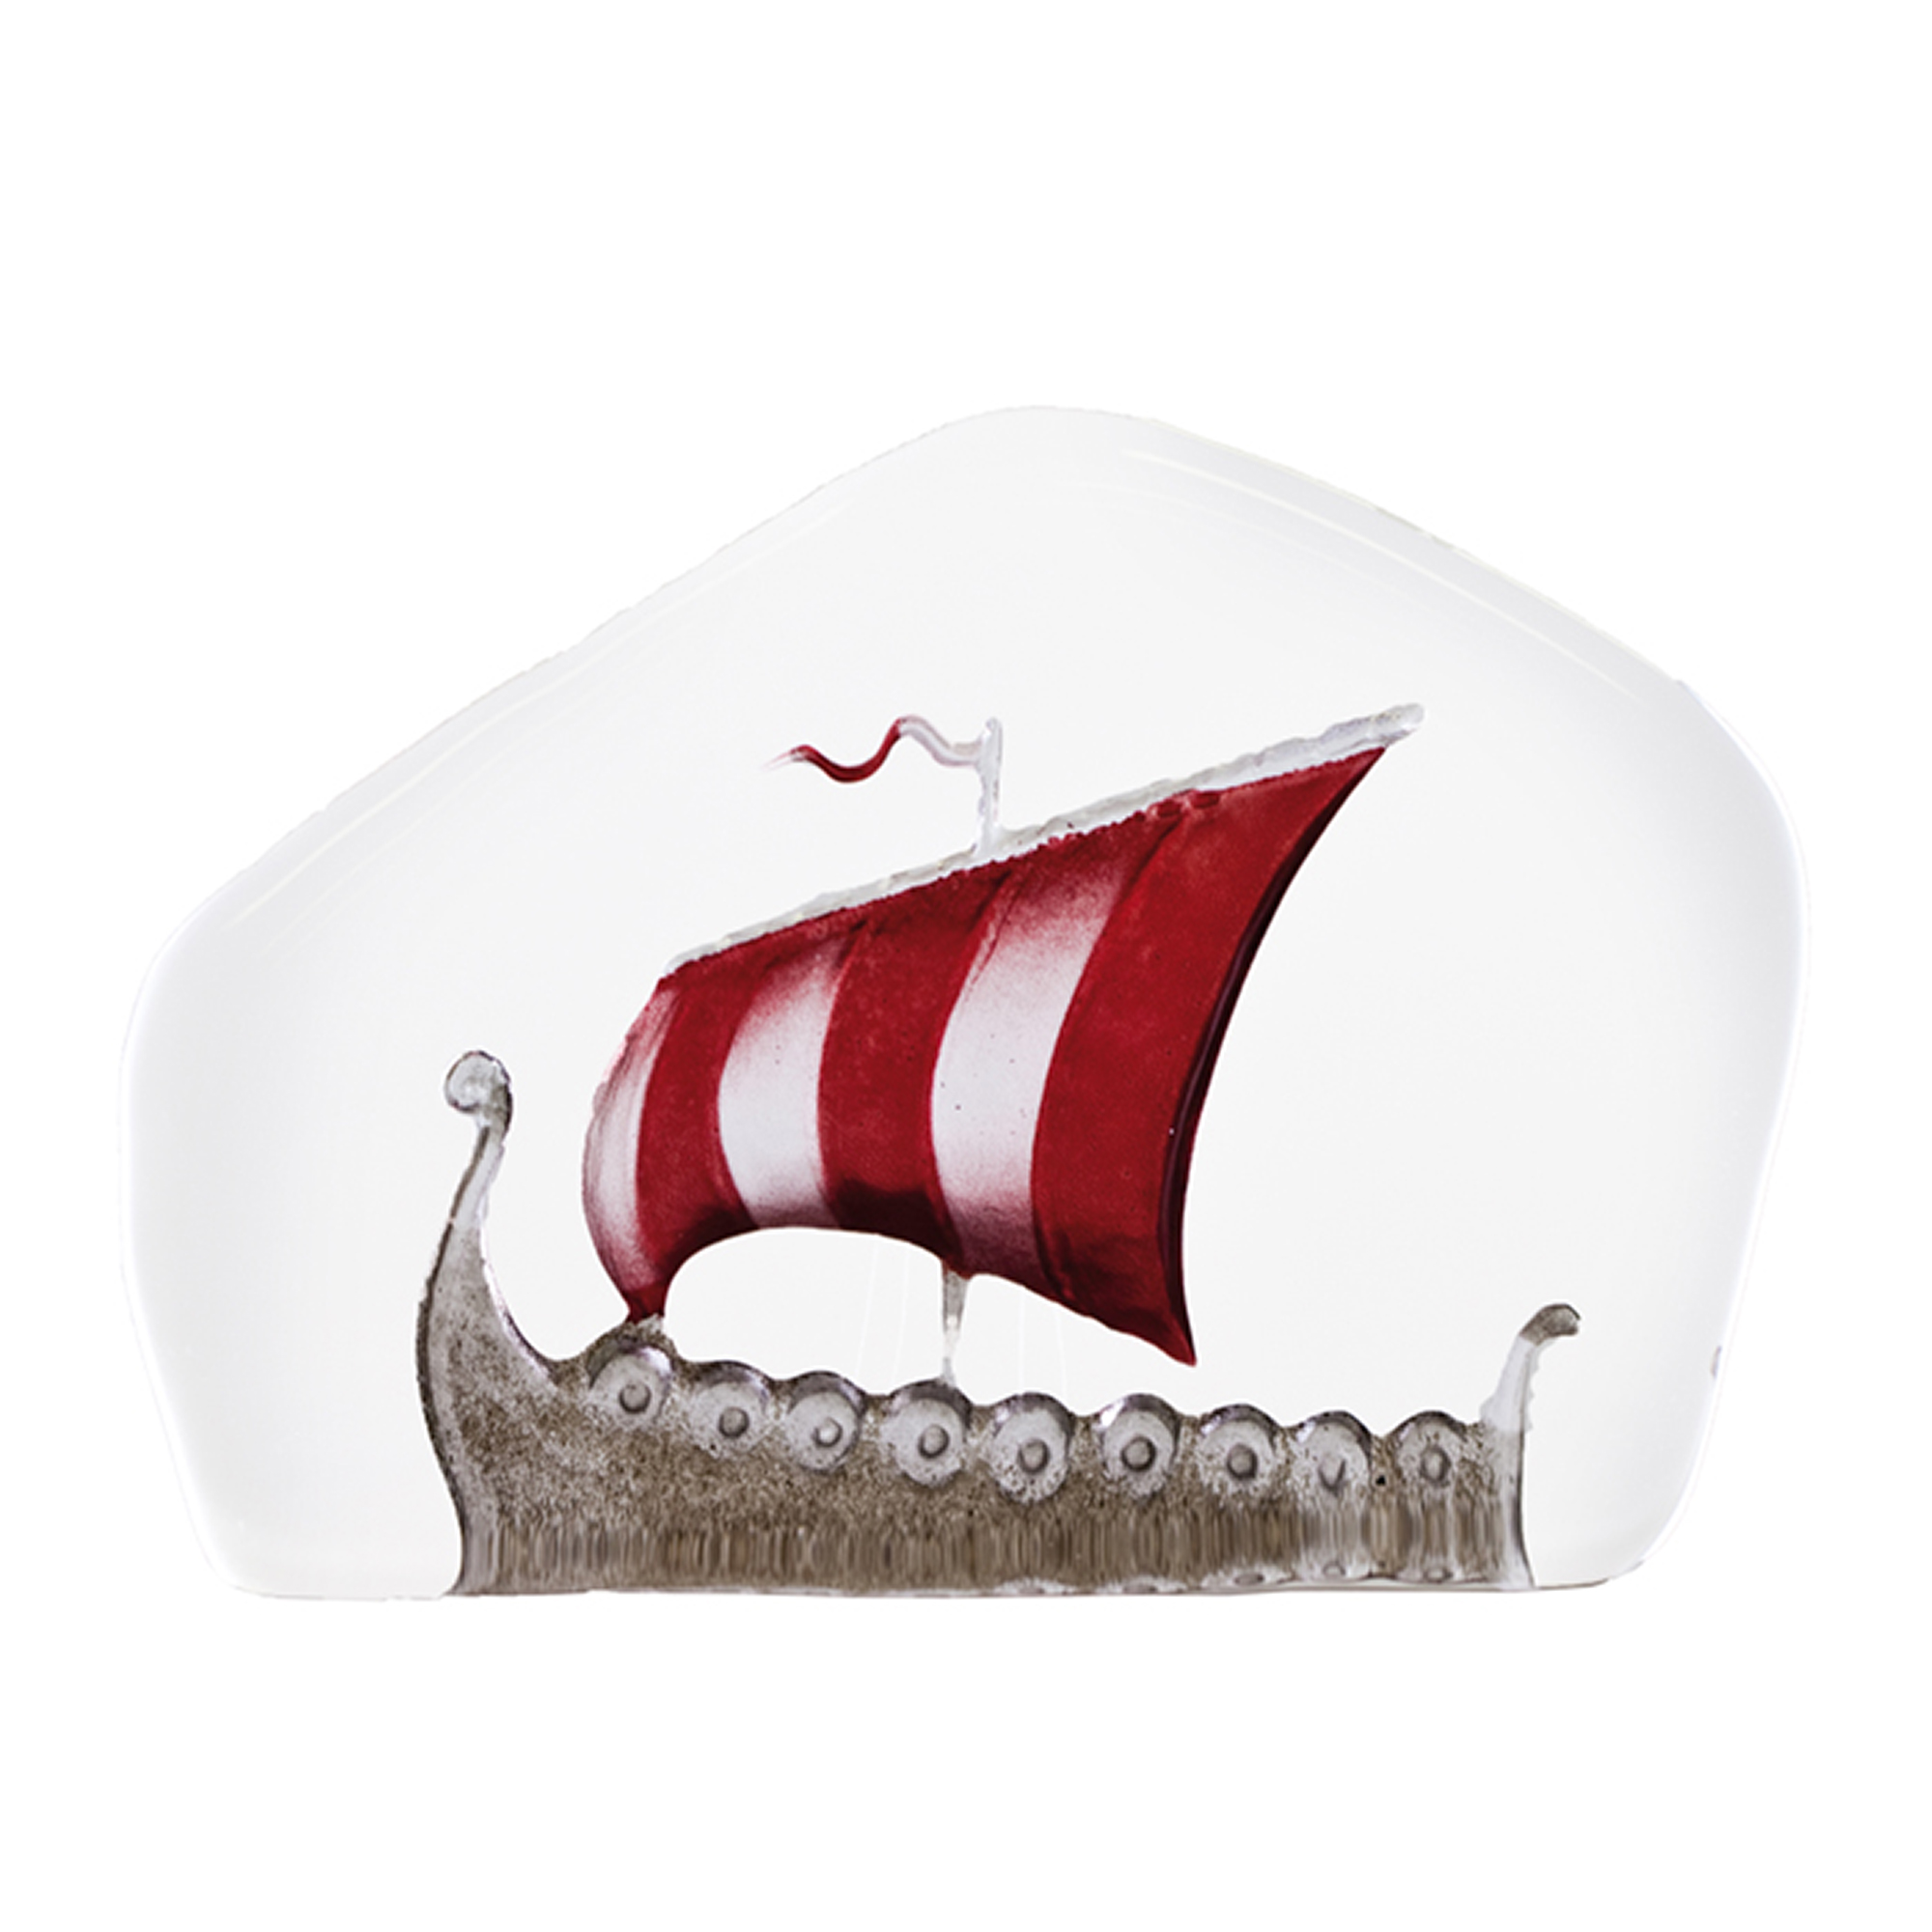 The Vikings represent a period approx. 800 – 1050 AD in Nordic history of great expansion and exploration. The Vikings travelled by boats called Long ships. Painted crystal. Brand: Mats Jonasson Målerås Data: Size: 105 x 75 mm Designer: Mats Jonasson